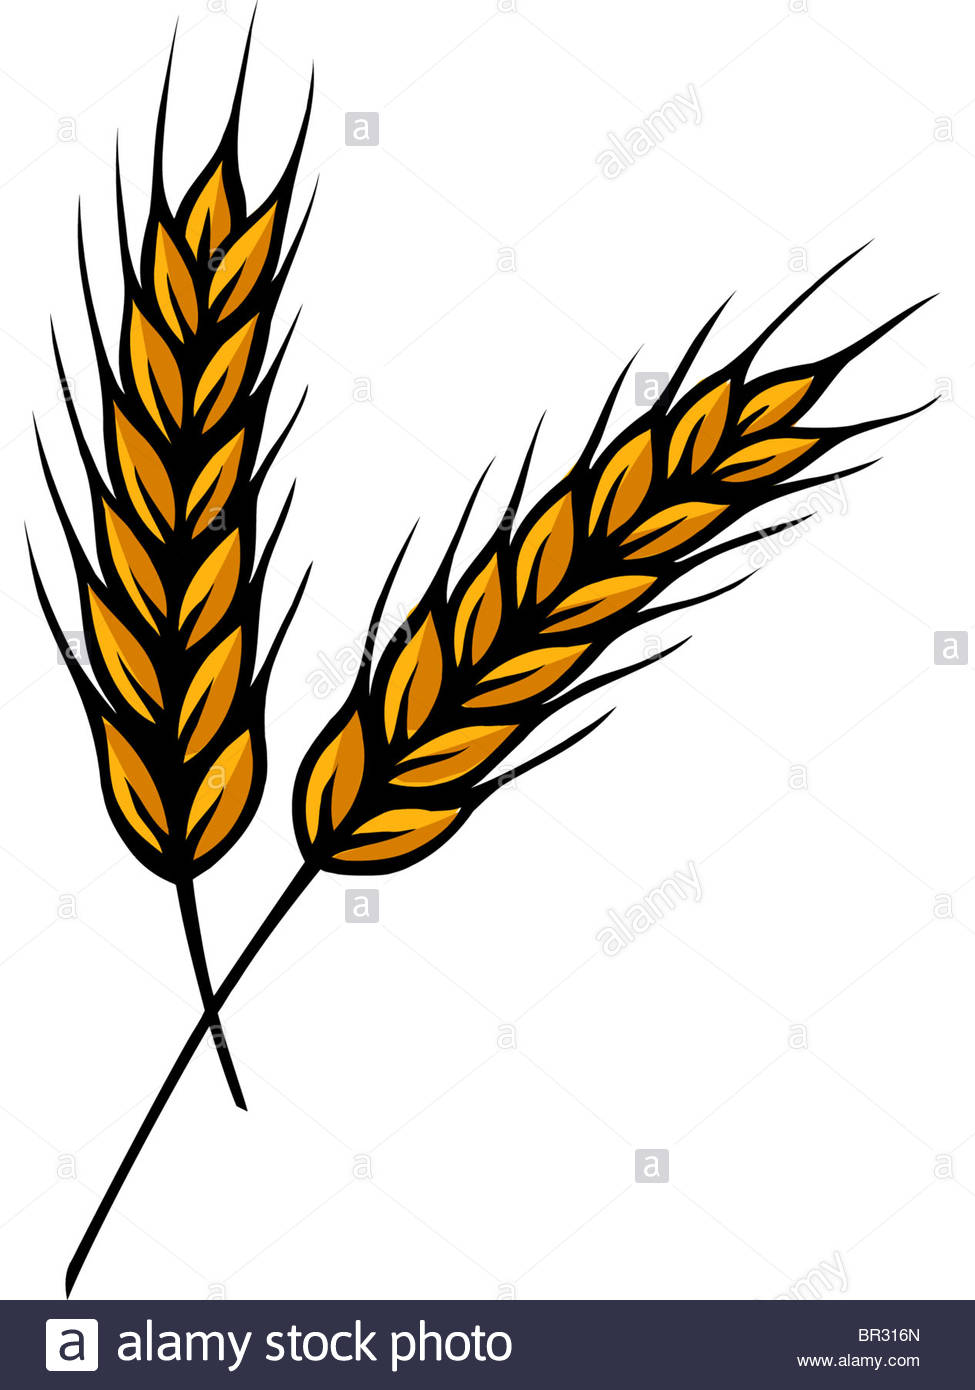 975x1390 Wheat Stalk Drawing Wheat Stalk Painting By Jelly Pictures To Pin